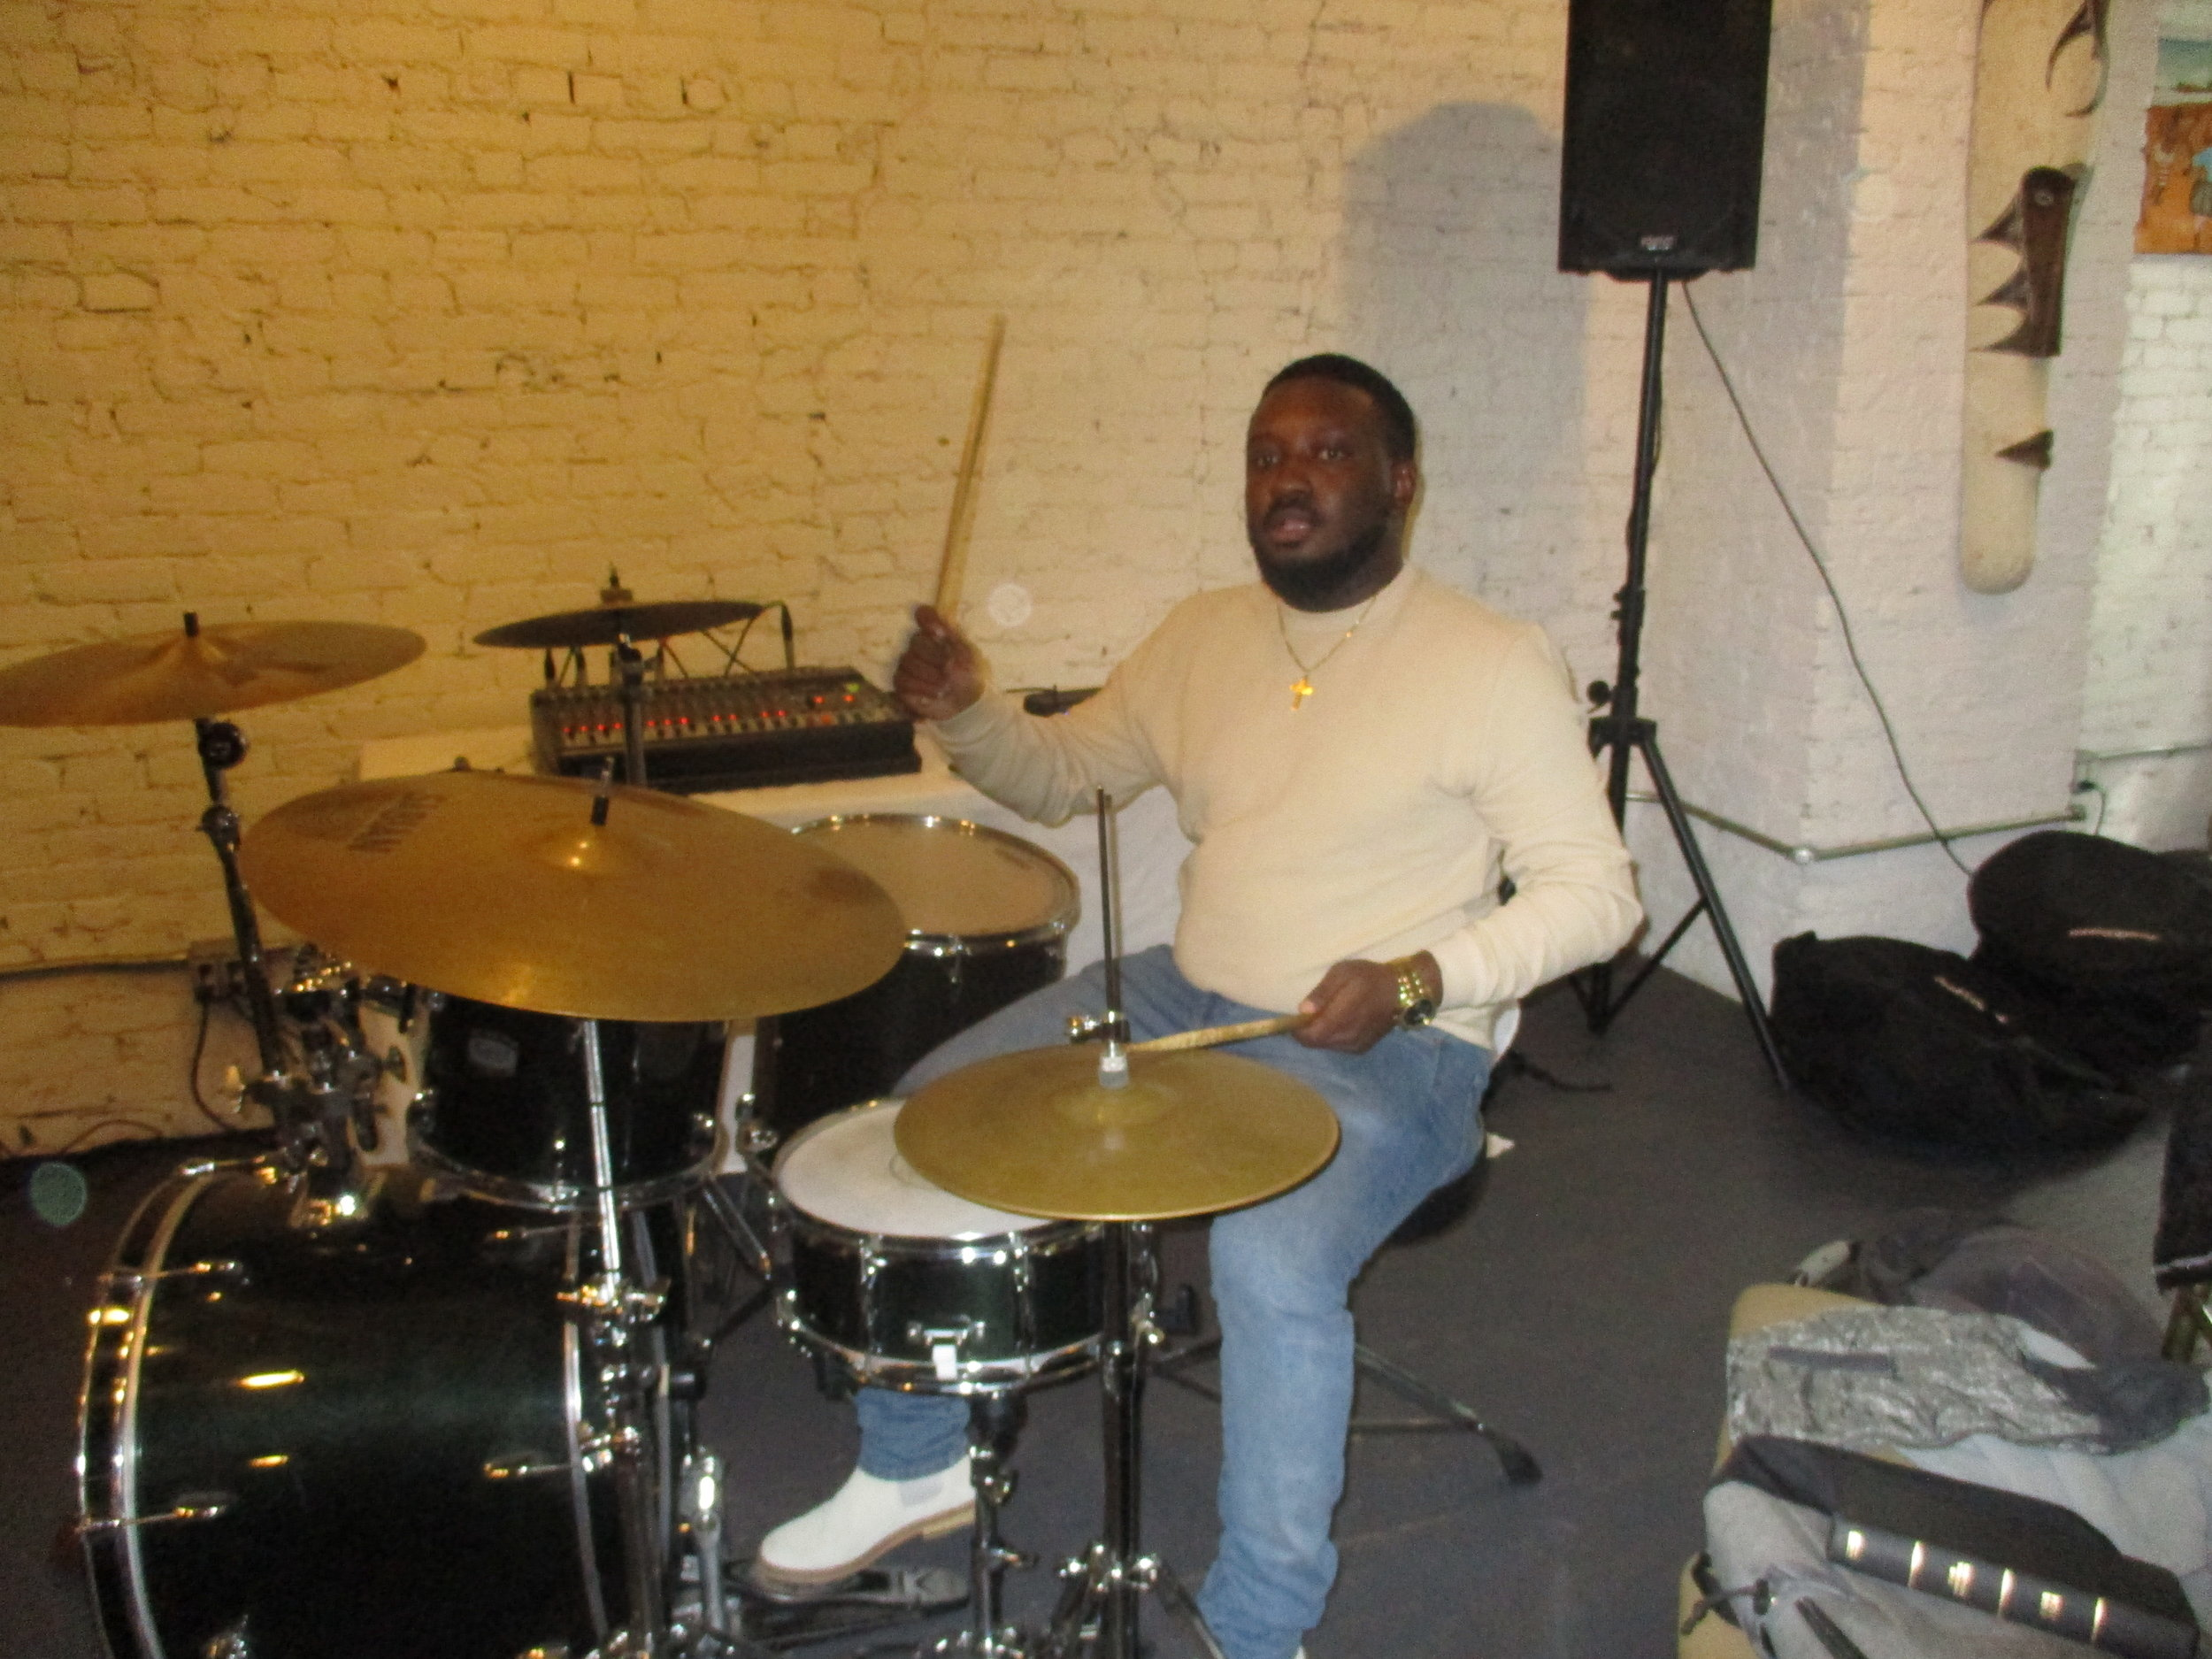 Drummer of the band